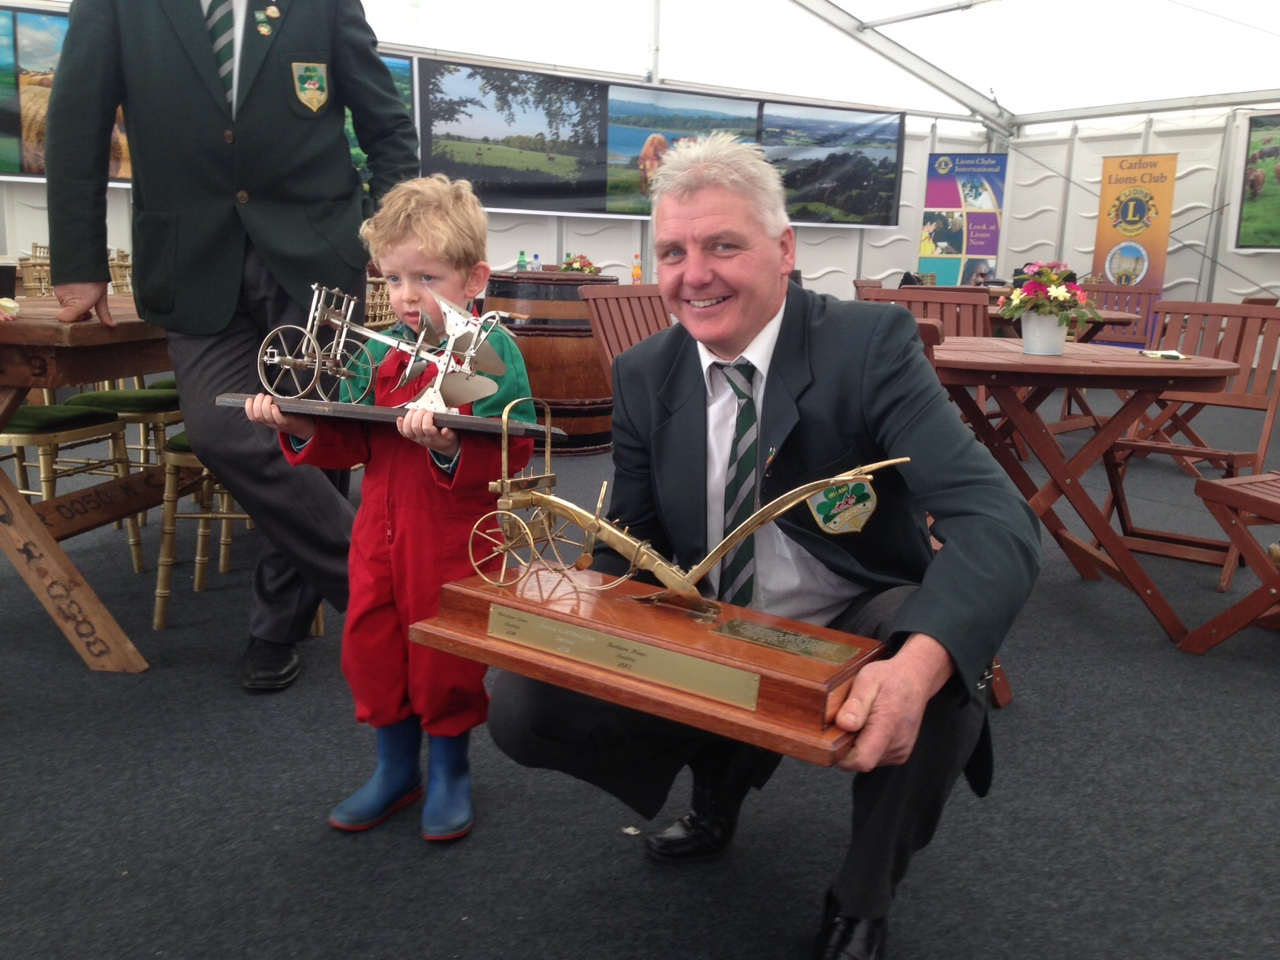 Padraig Whelan, son of well known ploughman John Whelan pictured with Eamonn Treacey, current World Ploughing Champion.